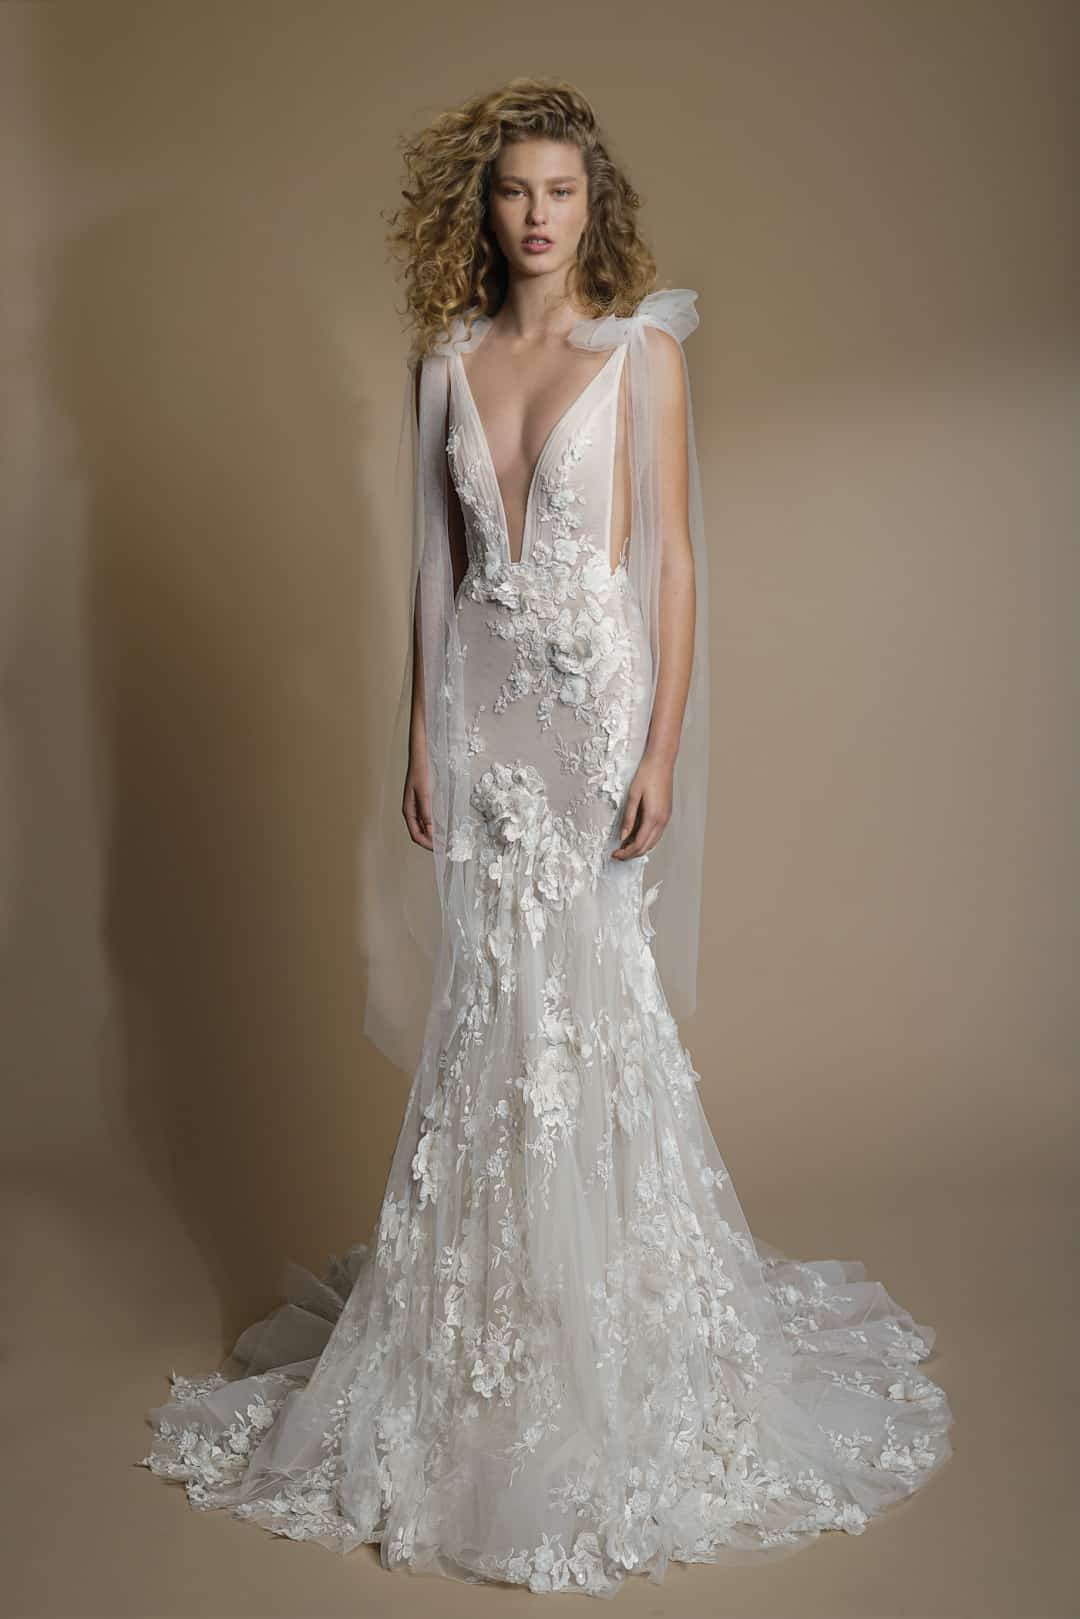 Haute Couture svadobne saty - G-104-F